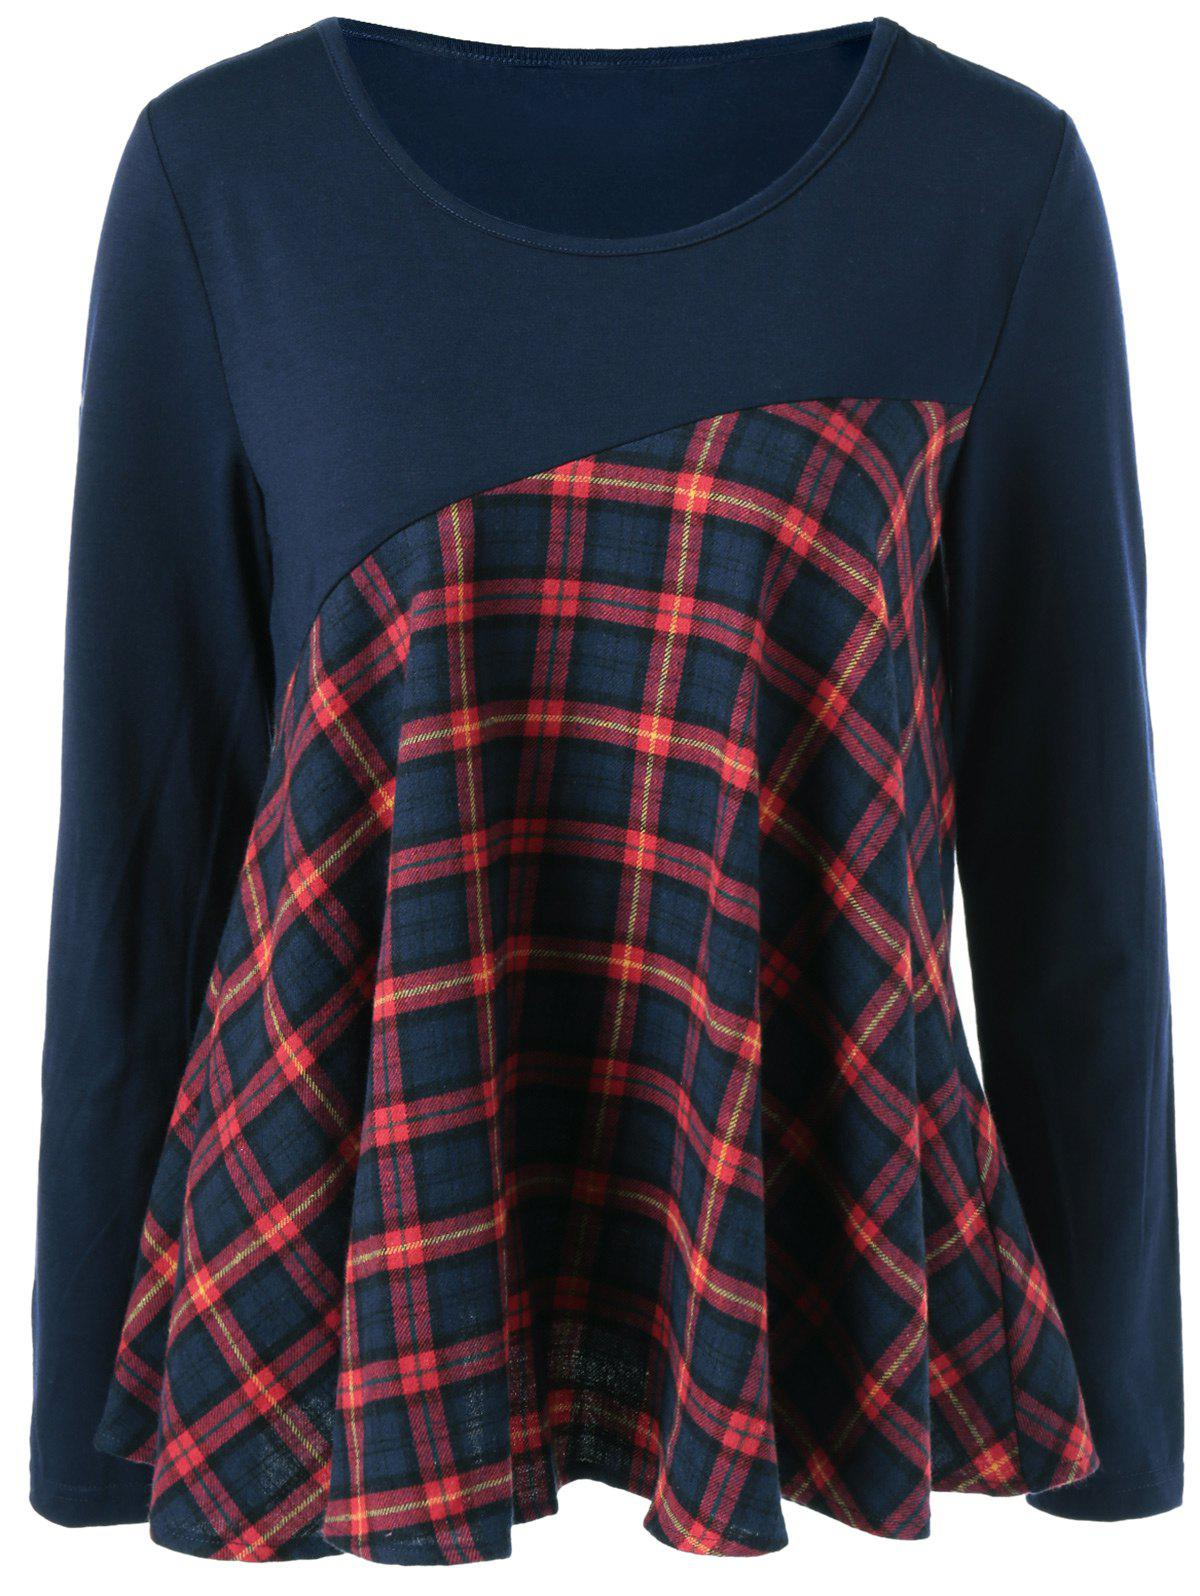 Plaid Trim Elbow Patch BlouseWOMEN<br><br>Size: M; Color: BLUE AND RED; Style: Casual; Material: Cotton Blends,Spandex; Shirt Length: Regular; Sleeve Length: Full; Collar: Scoop Neck; Pattern Type: Plaid; Season: Fall,Spring,Summer; Weight: 0.390kg; Package Contents: 1 x Blouse;